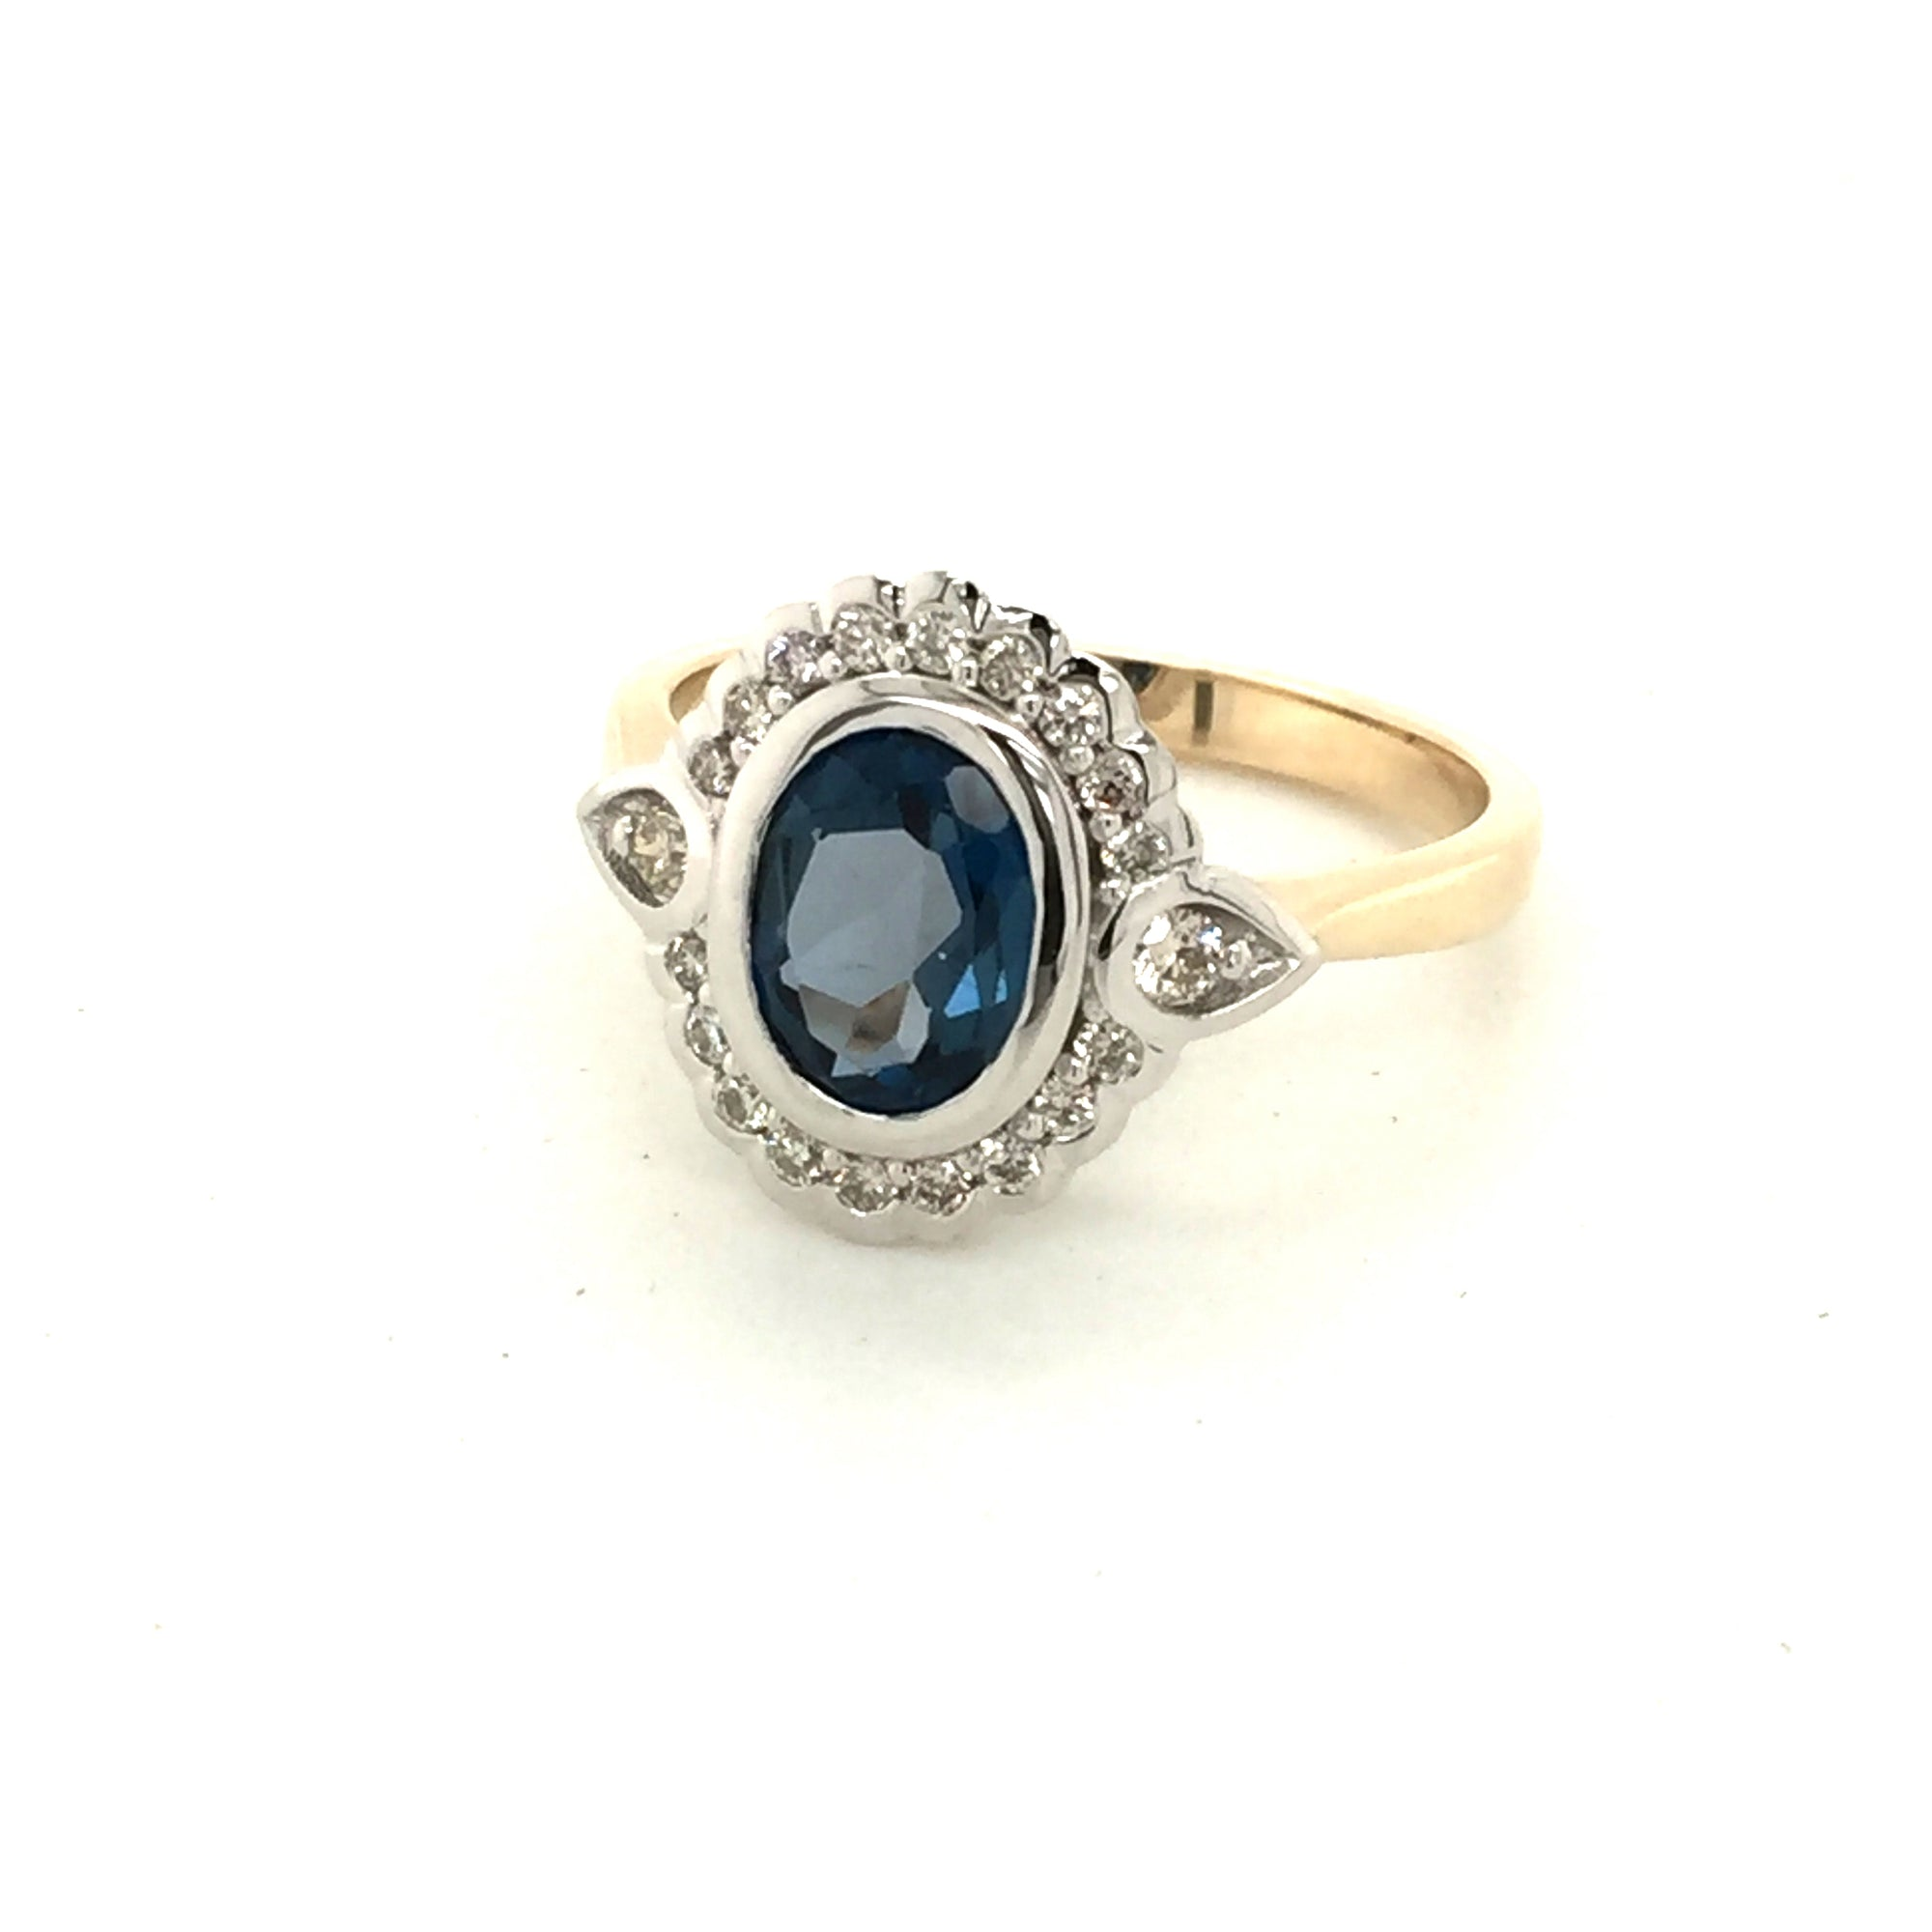 9ct gold London blue topaz ring - Red Carpet Jewellers